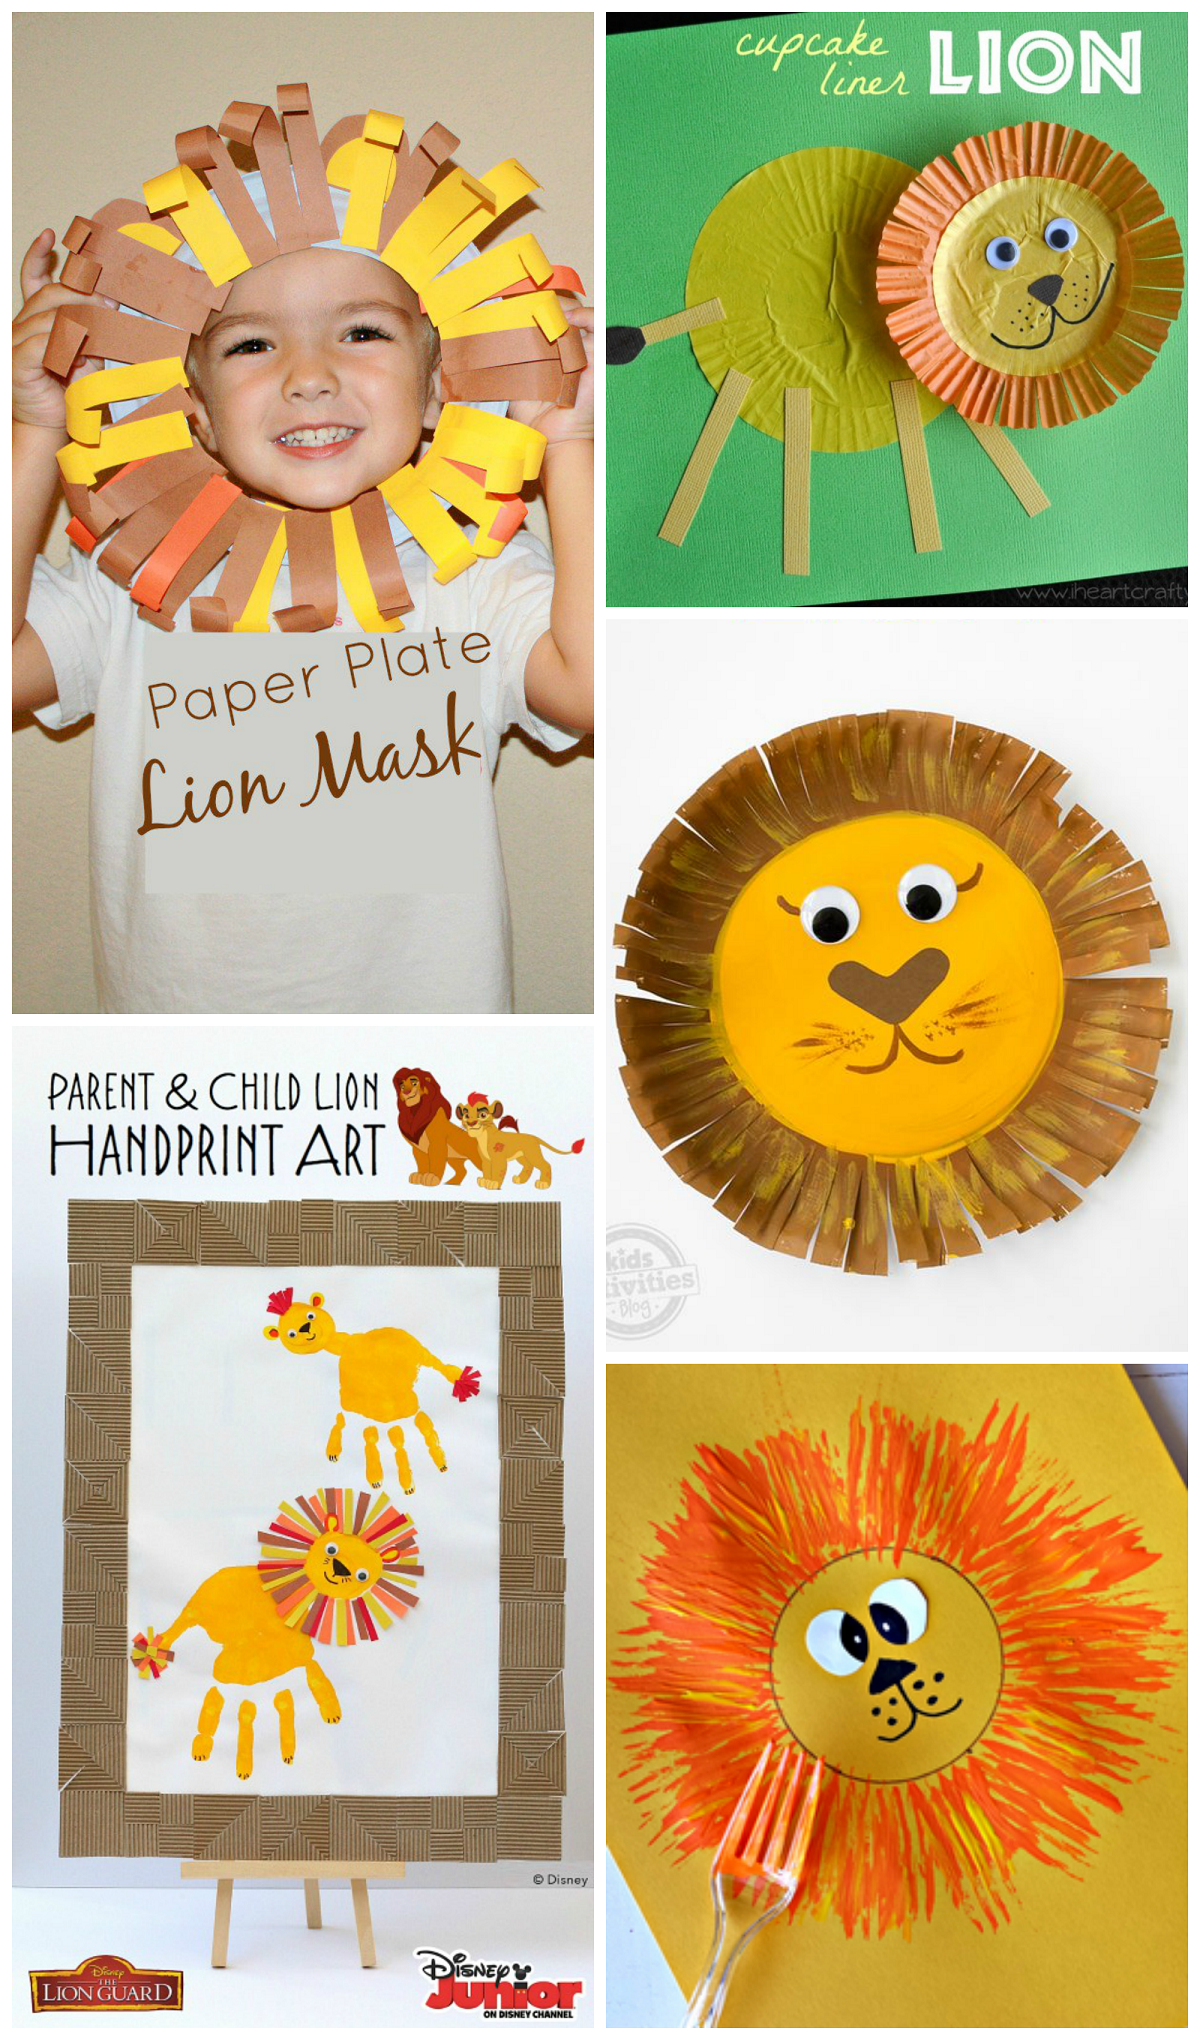 Adorable Lion Crafts For Kids To Make Using Paper Plates